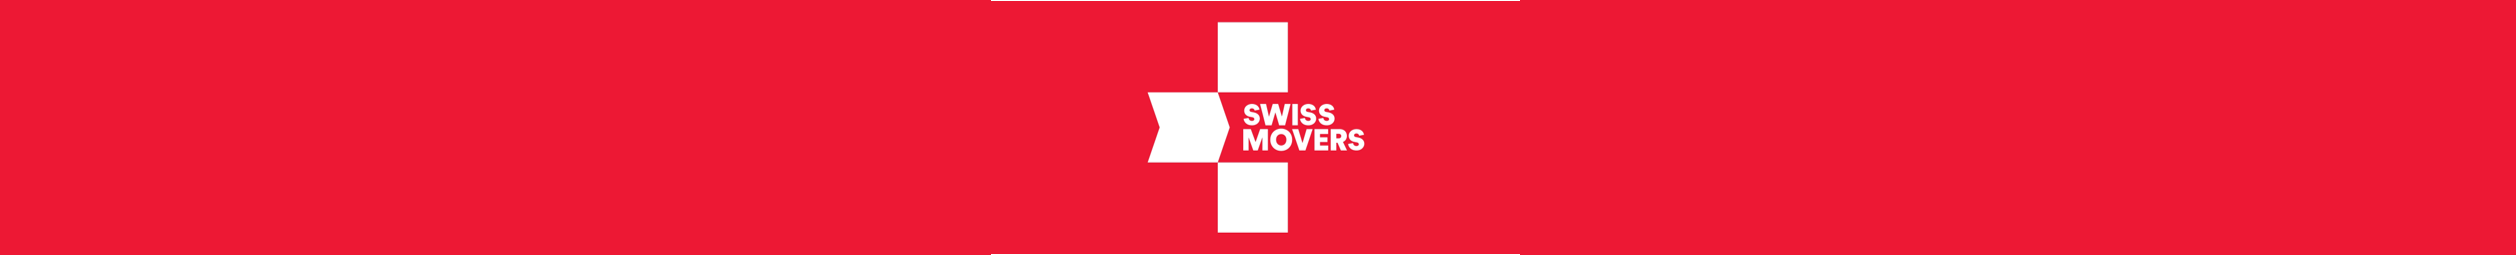 Swiss Movers